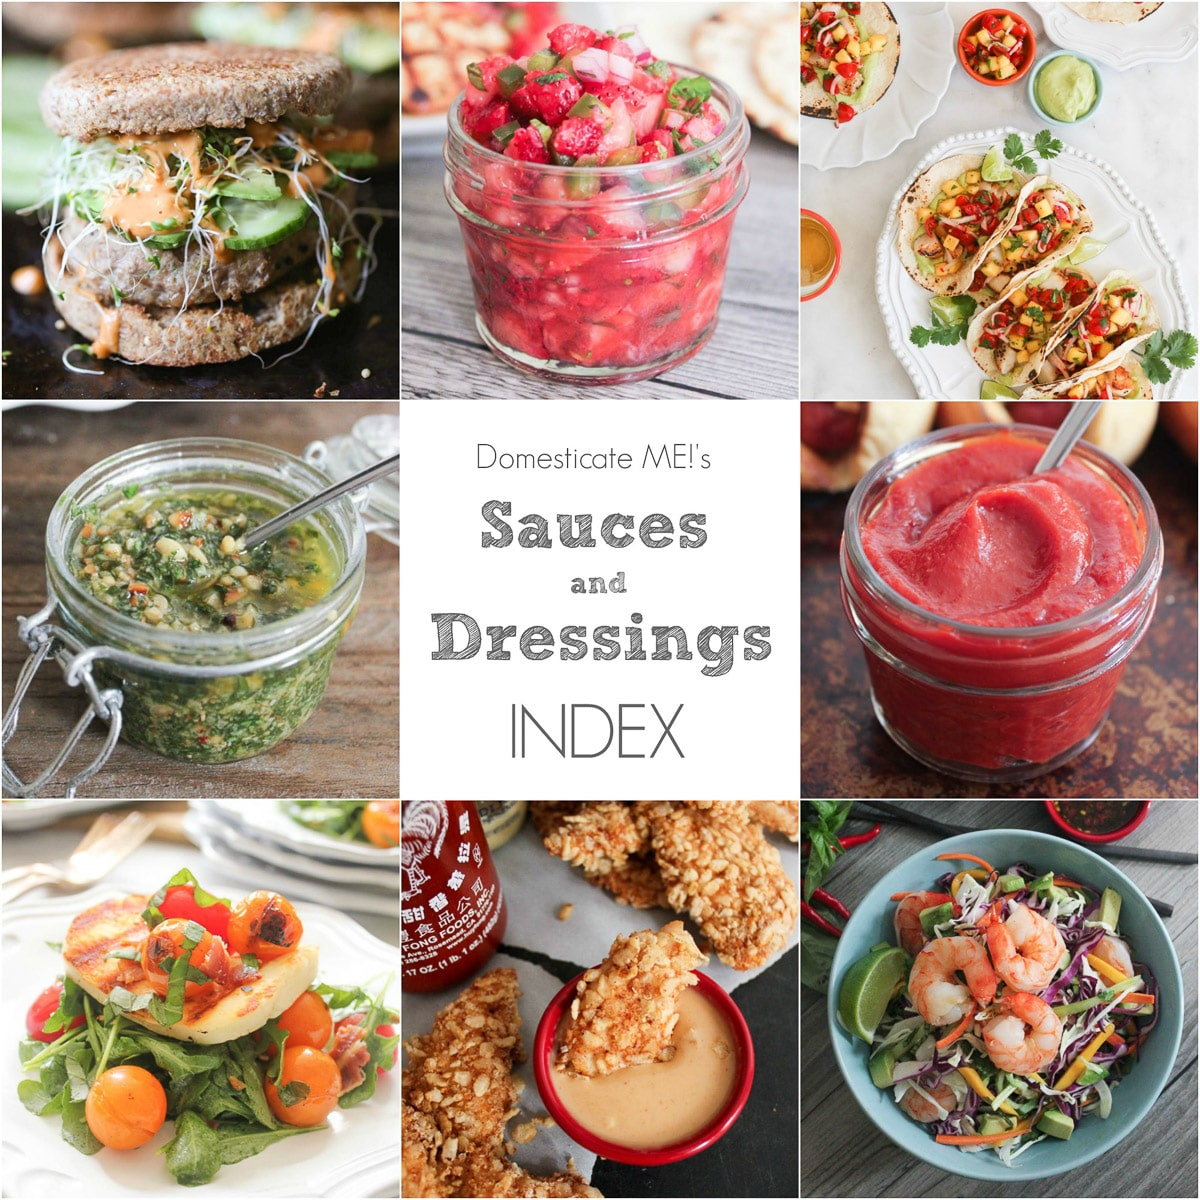 Domesticate-Me-Sauces-and-Dressings-Index